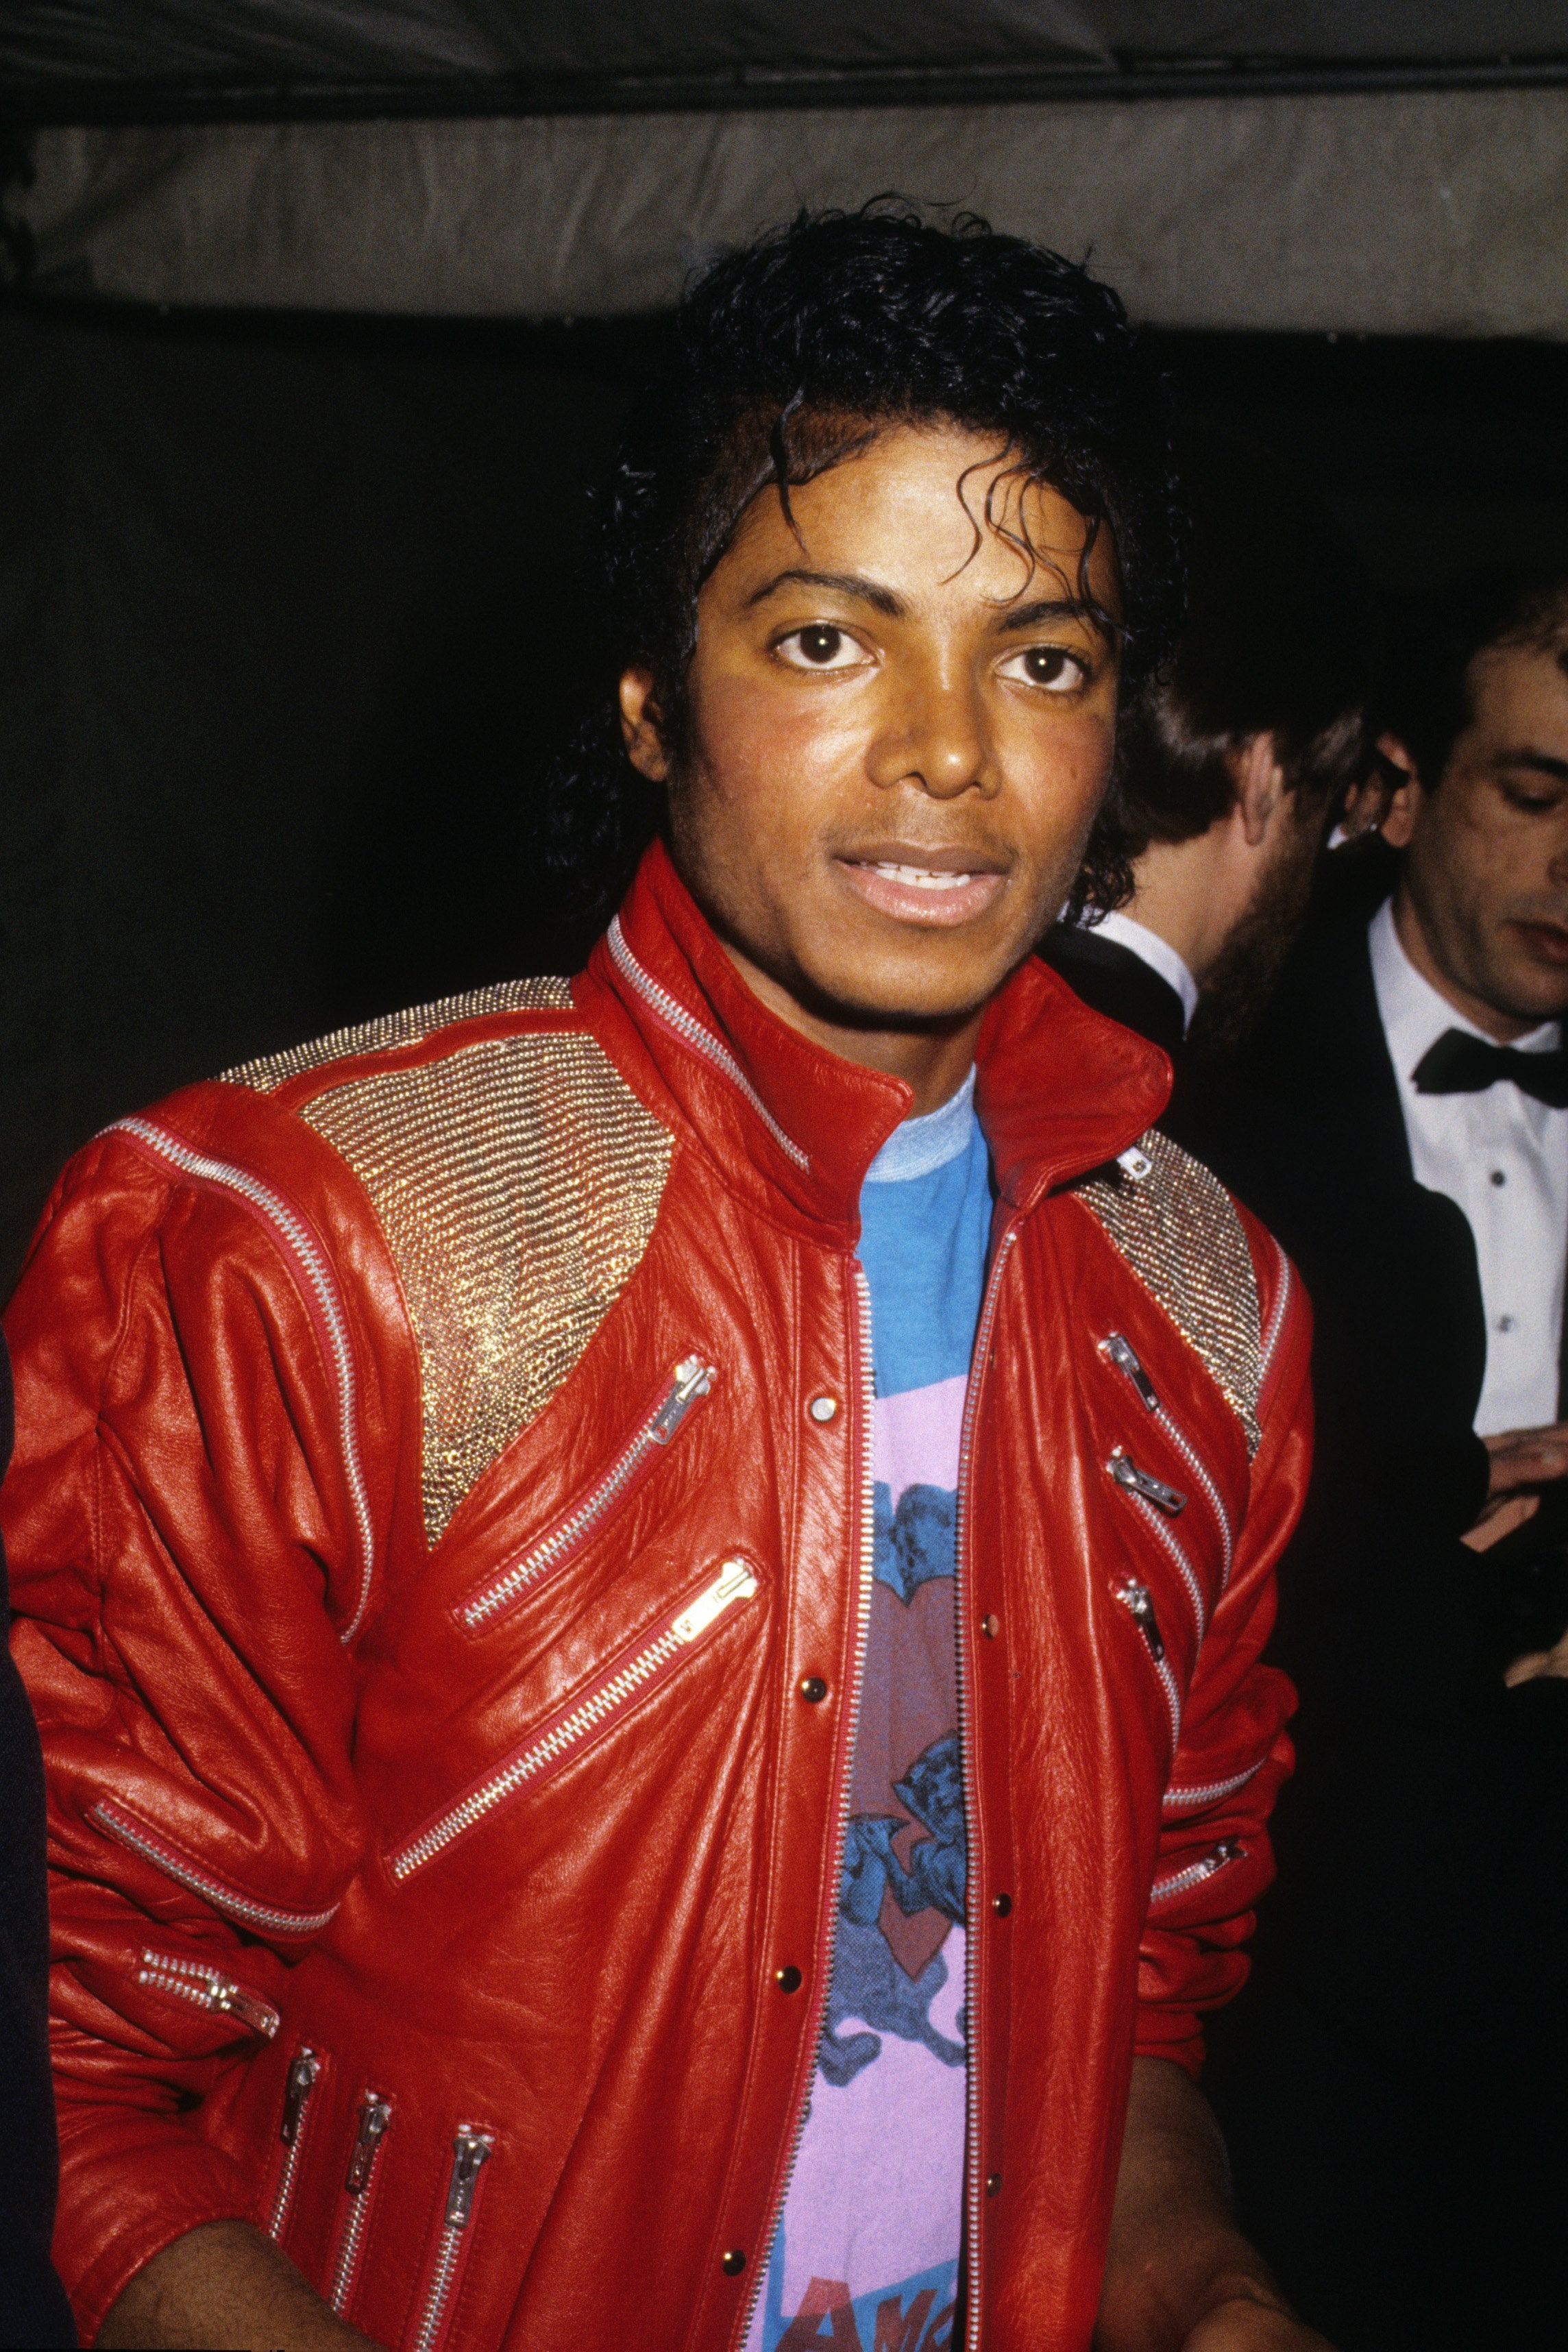 That Was Fast: 'Urban Myths' Episode Featuring Michael Jackson As A White Man Canceled